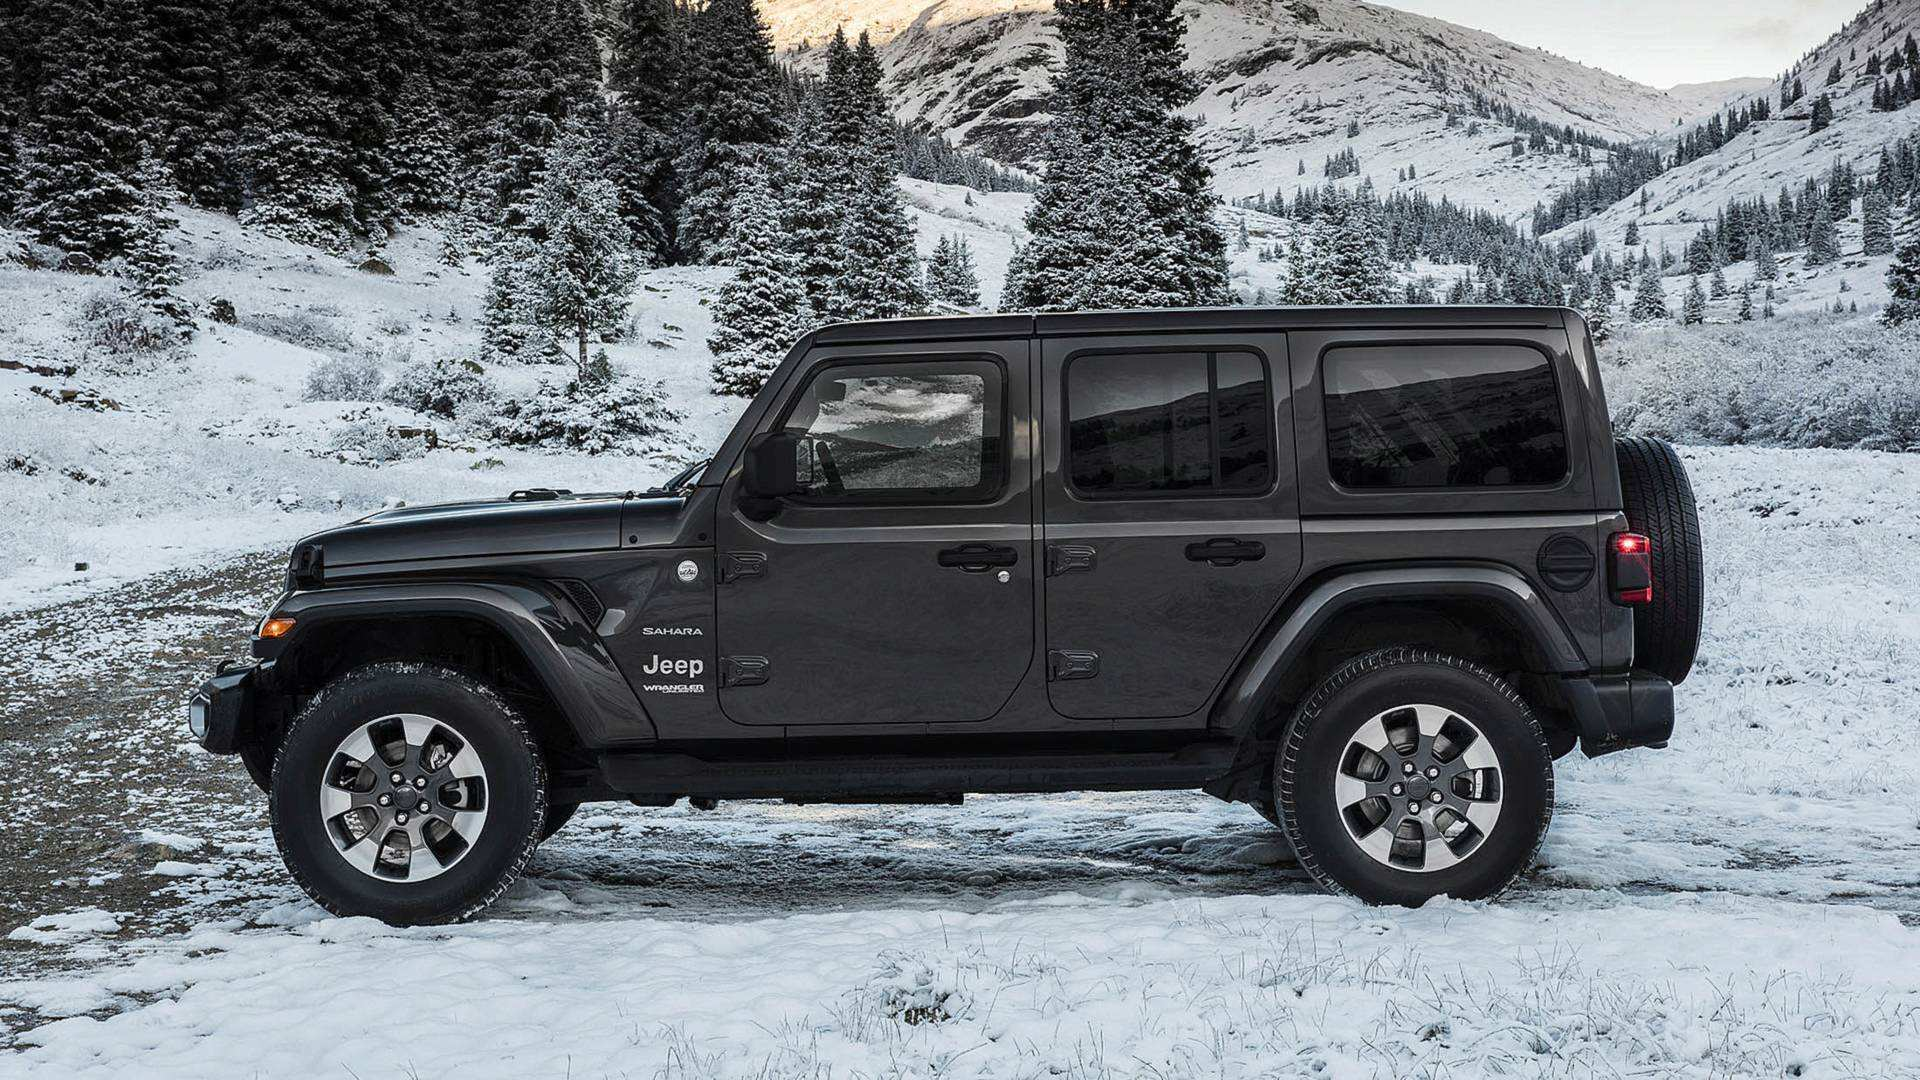 72 New Jeep New Models 2020 Research New by Jeep New Models 2020